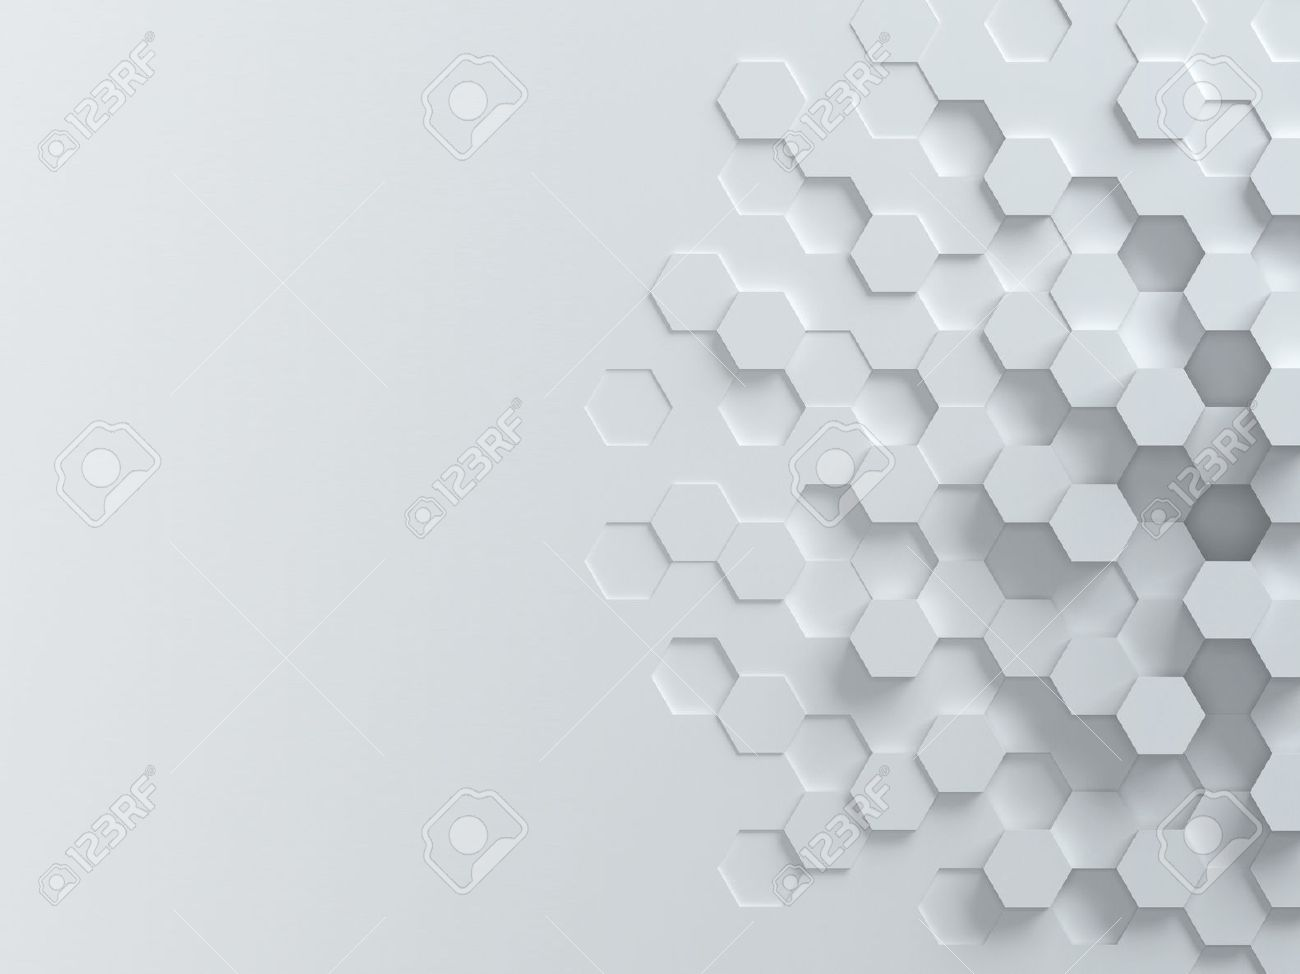 Hexagonal Abstract 3d Background Stock Photo Picture And Royalty